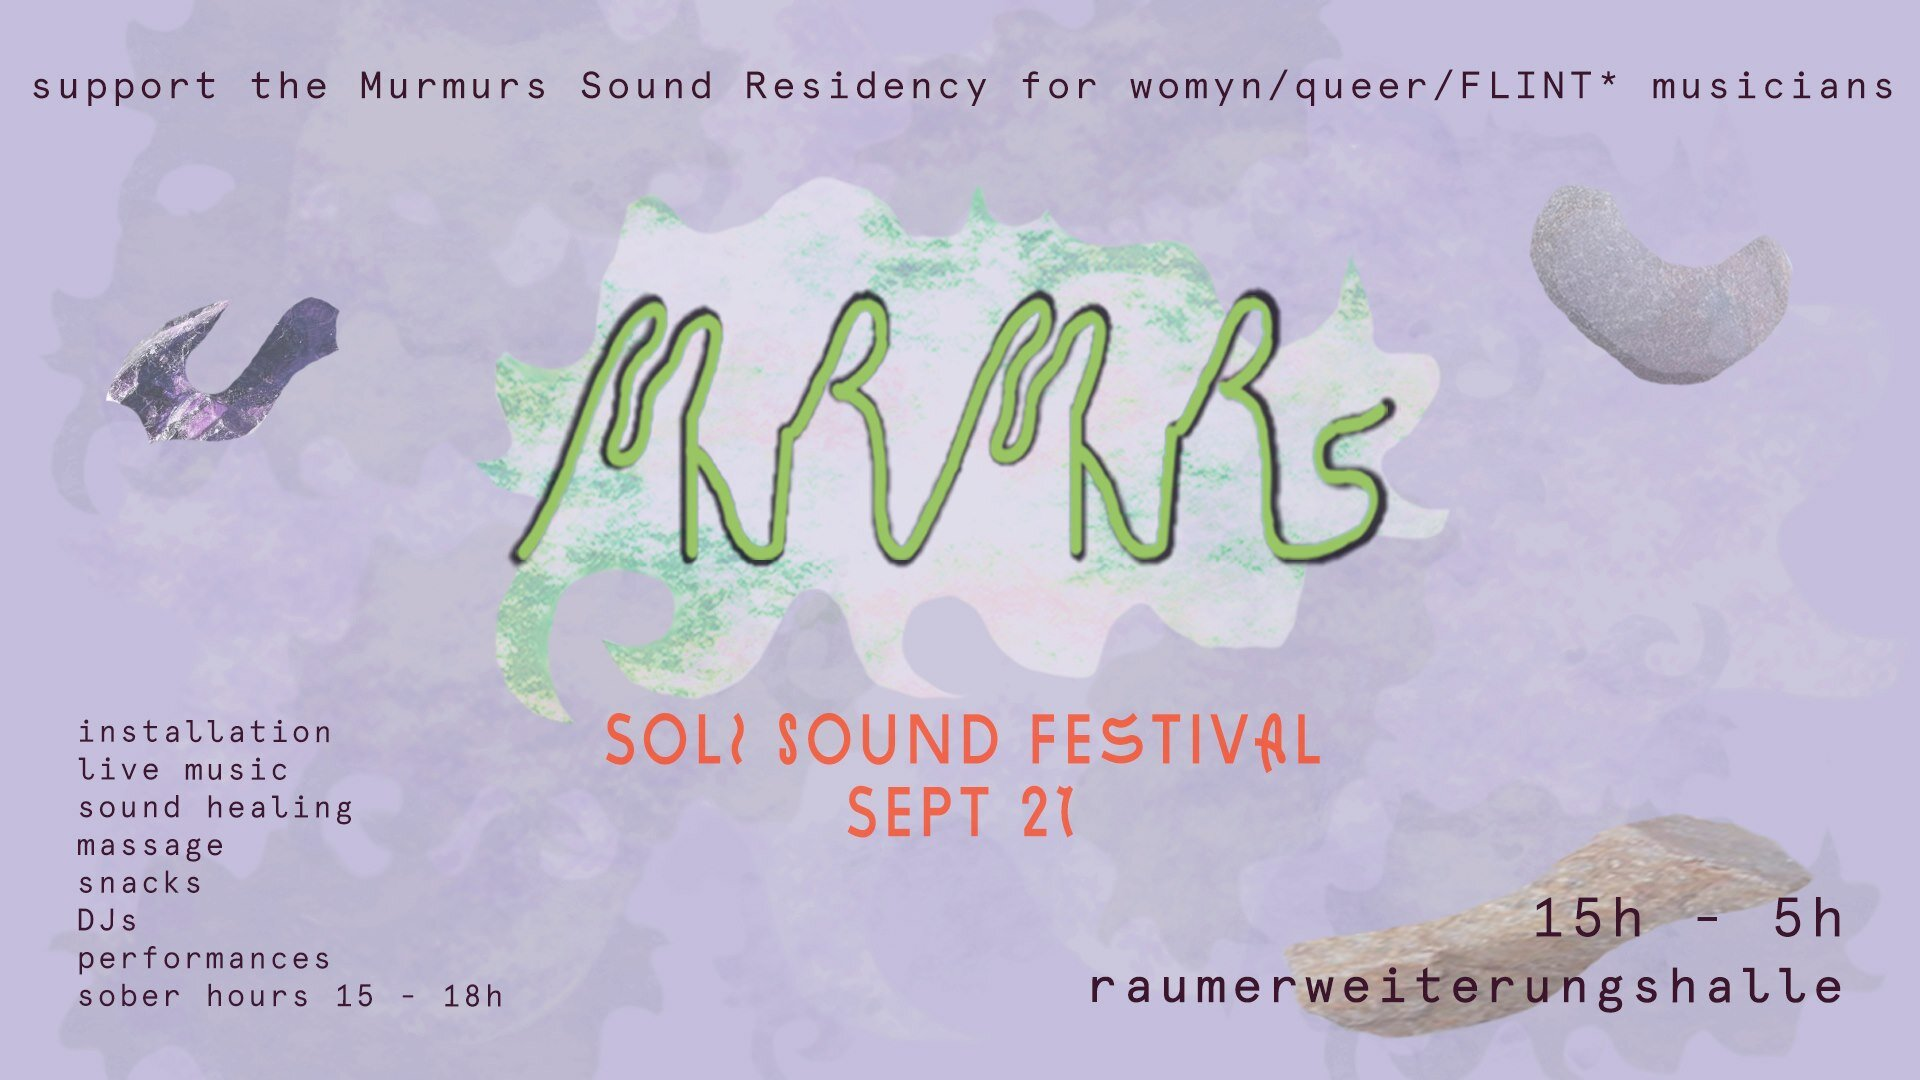 Providing visuals for this Berlin queer sound residency!